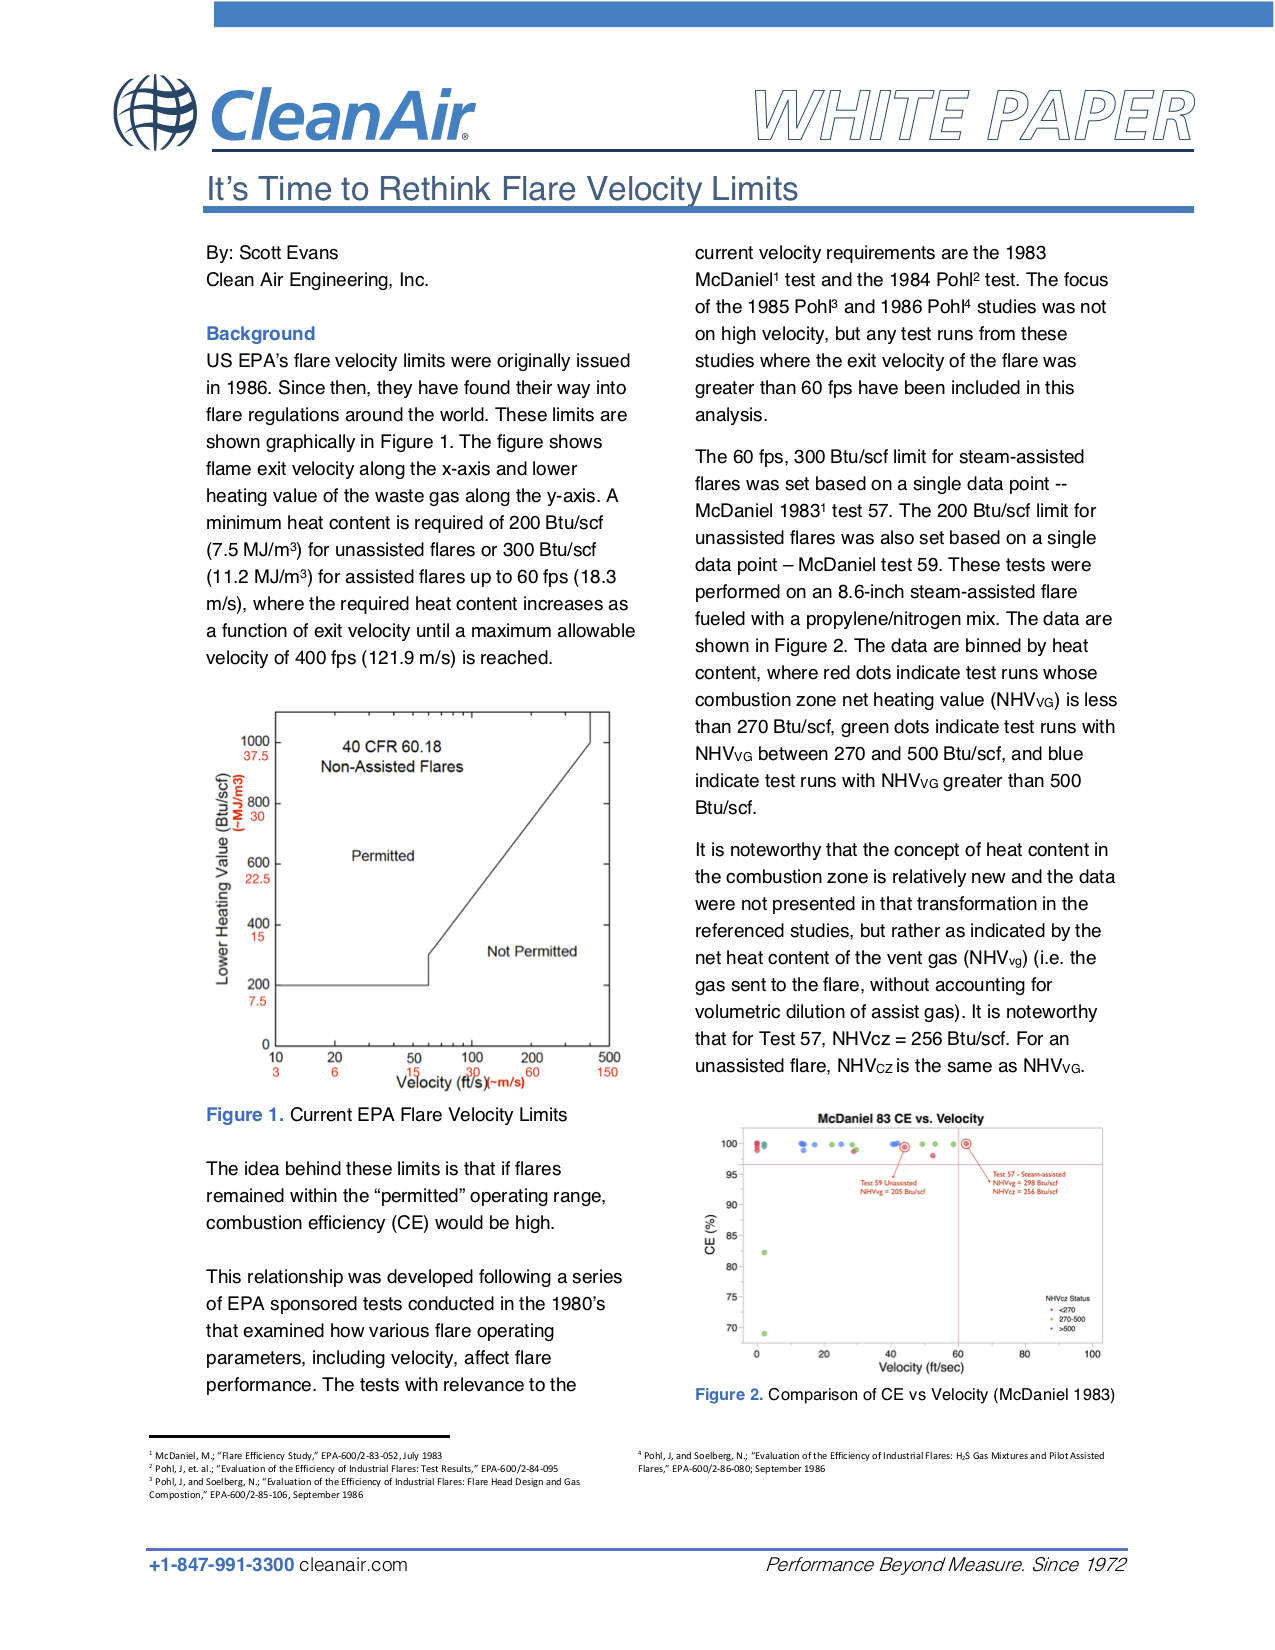 It's Time to Rethink Flare Velocity Limits White Paper (dragged).png